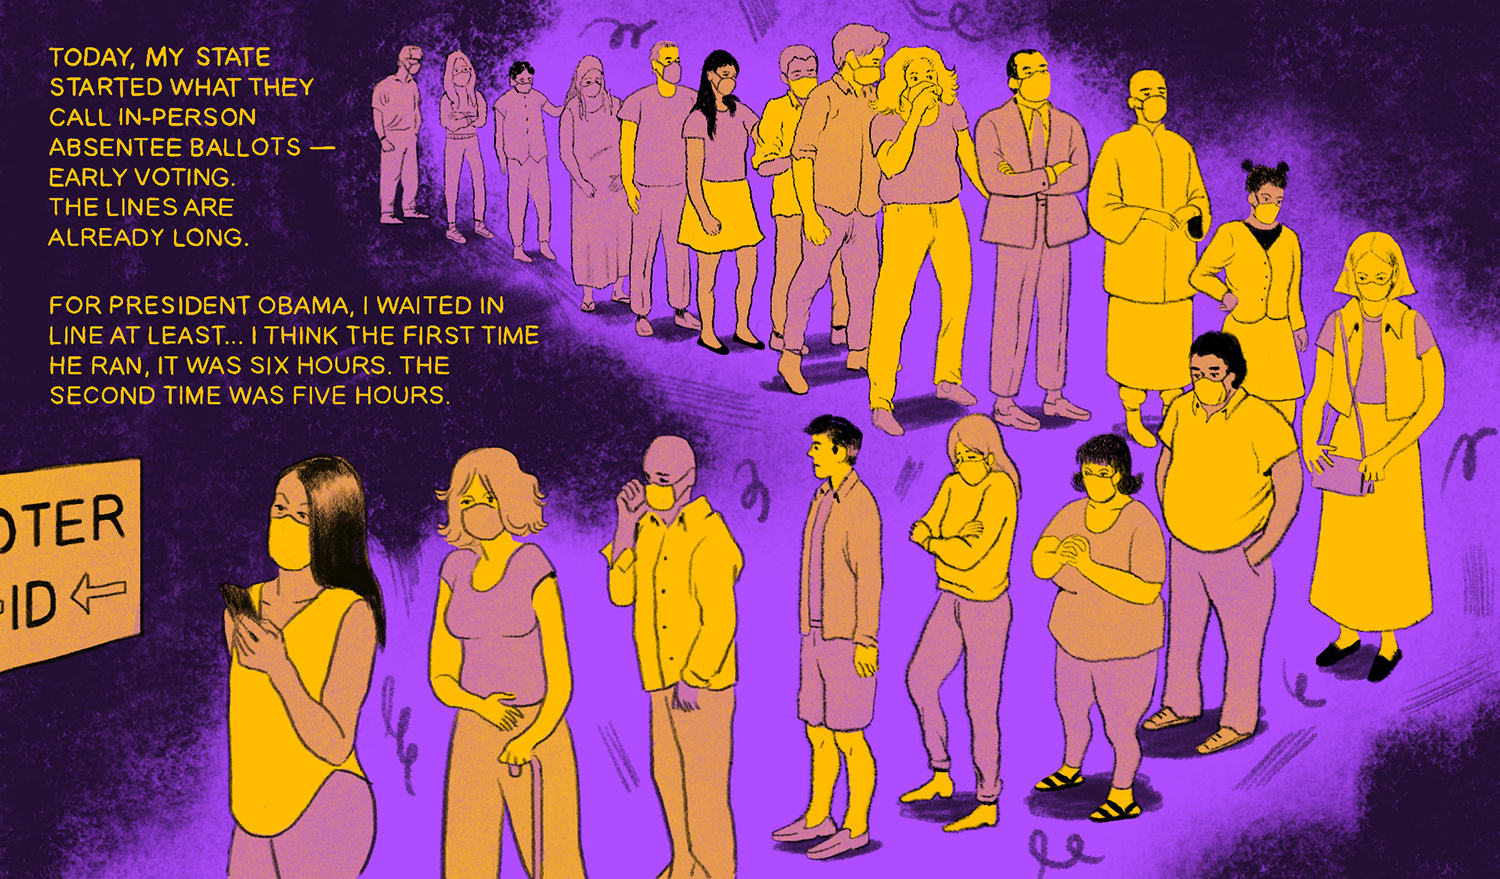 """Illustration of people wearing masks in line to vote. The text on the image reads """"Today, my state started what they call in-person absentee ballots — early voting. The lines are already long. For President Obama, I waitined in line at least ... I think the first time he ran, it was six hours. The second was five hours."""""""